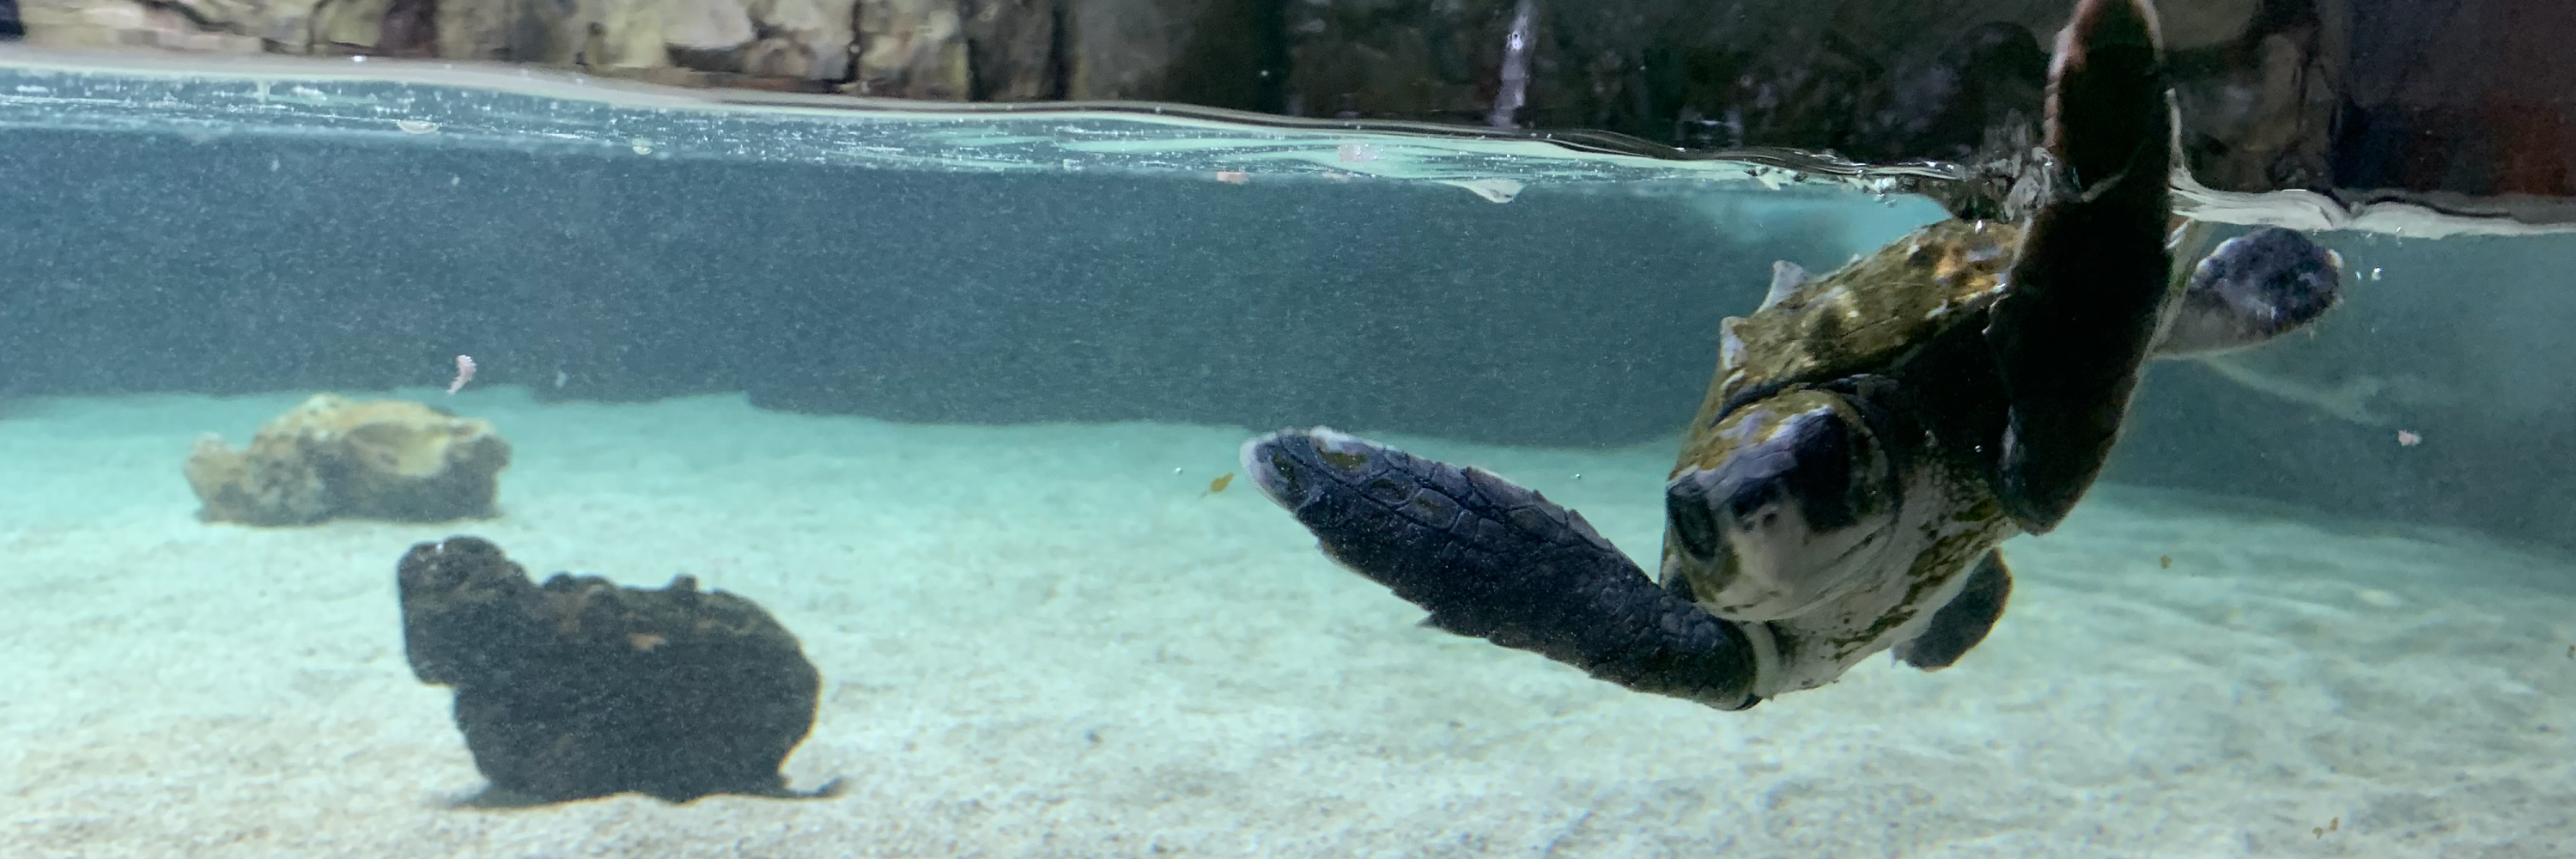 Rescued Sea Turtles at SEA LIFE Grapevine